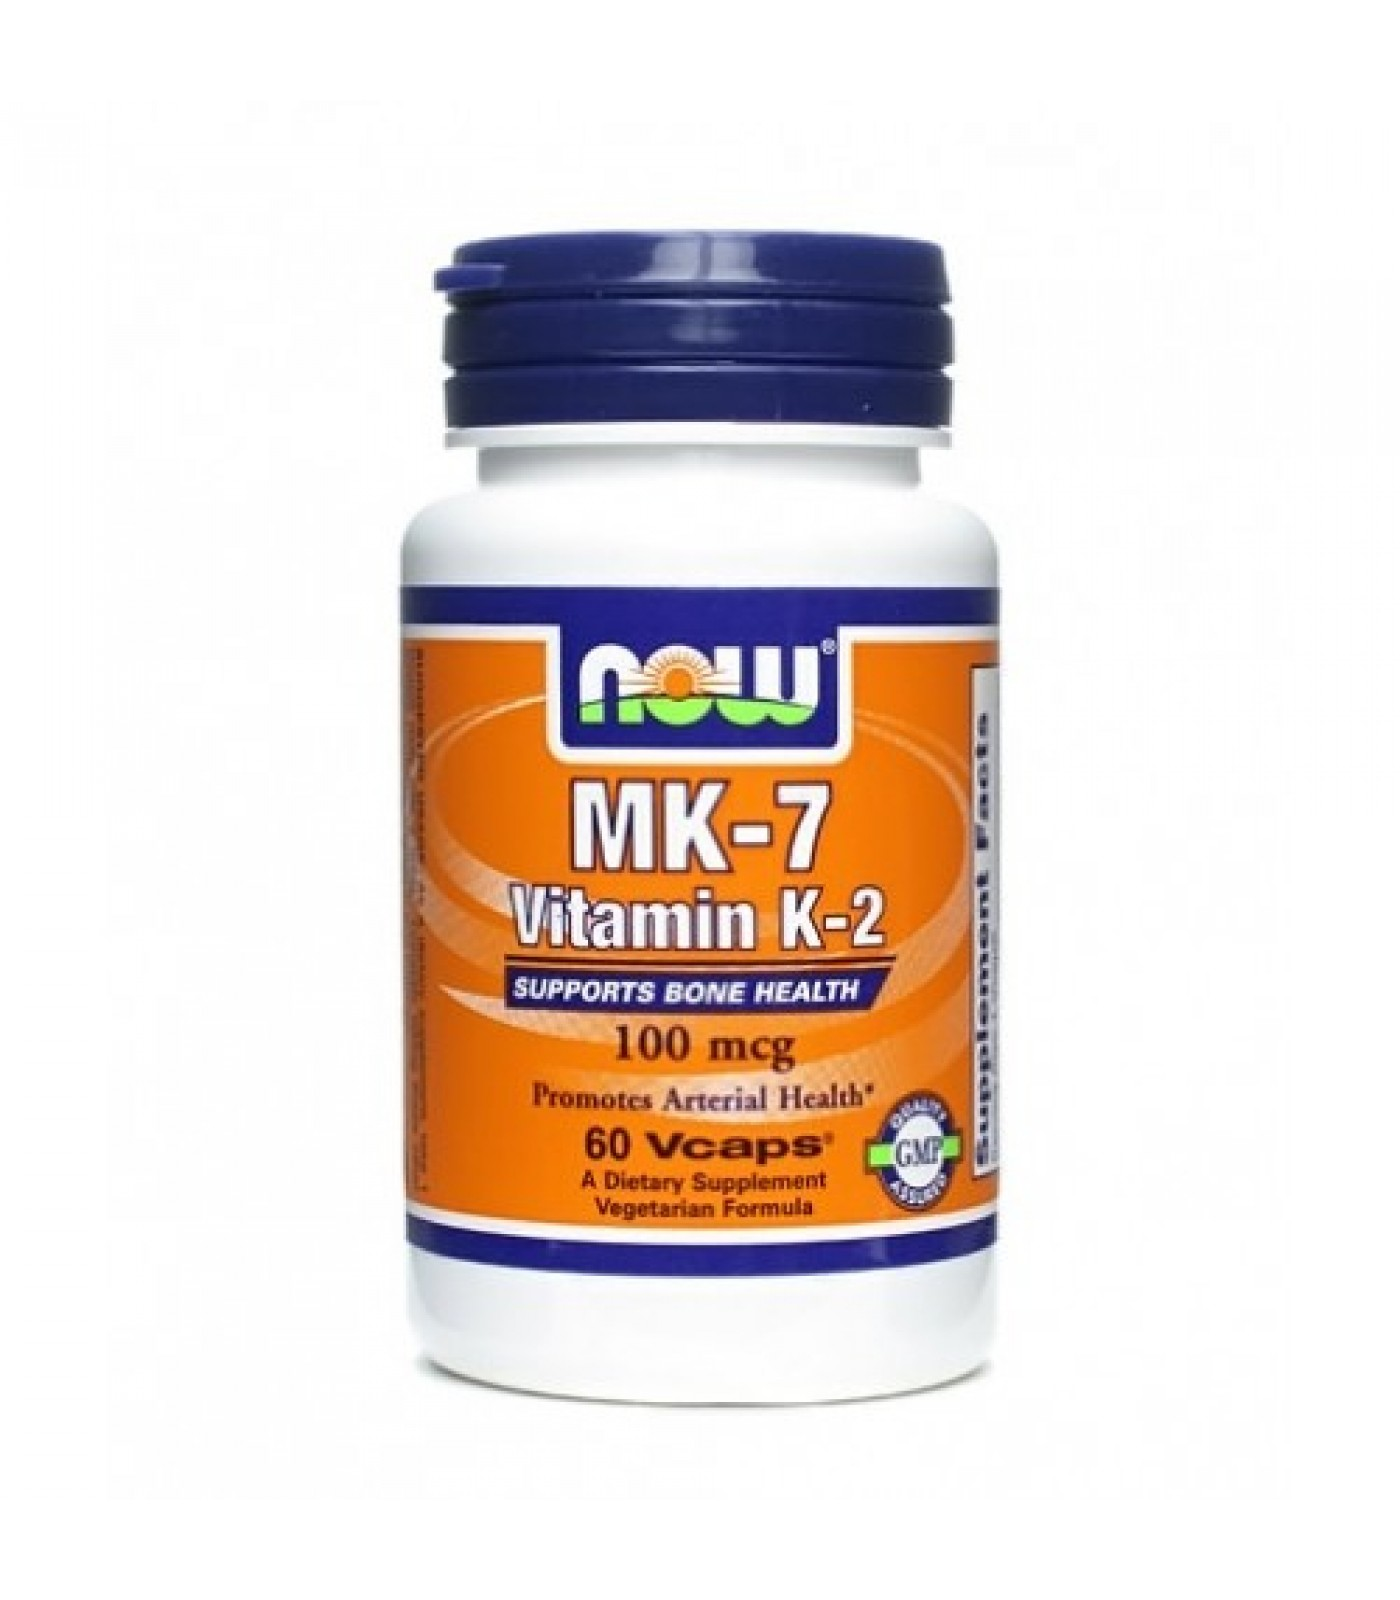 NOW - MK-7 Vitamin K-2 (100mcg.) / 60 VCaps.